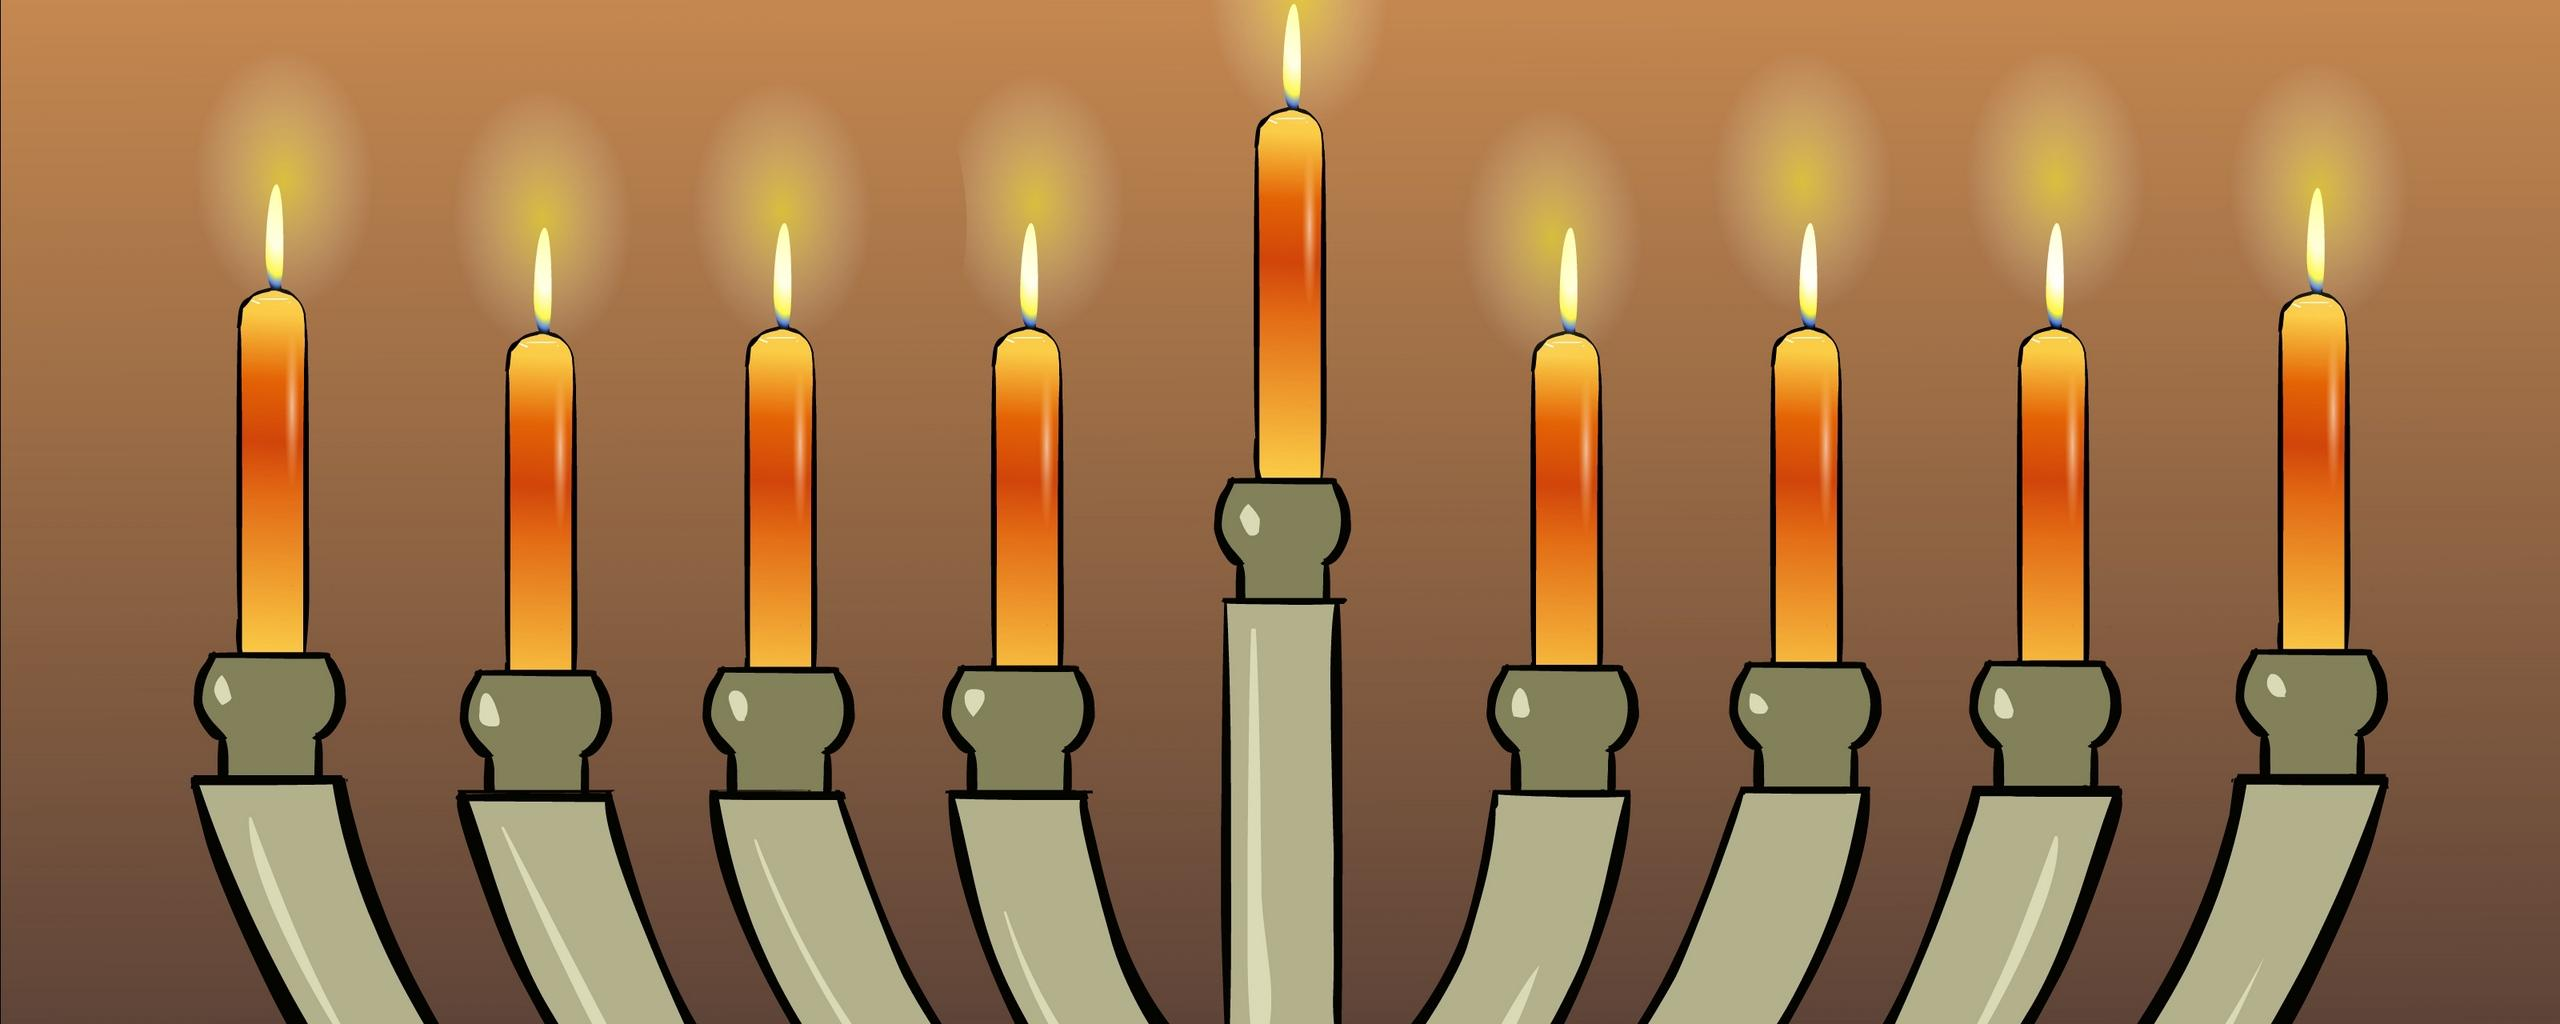 Download wallpapers 2560x1024 hanukkah, jewish holiday, 2014